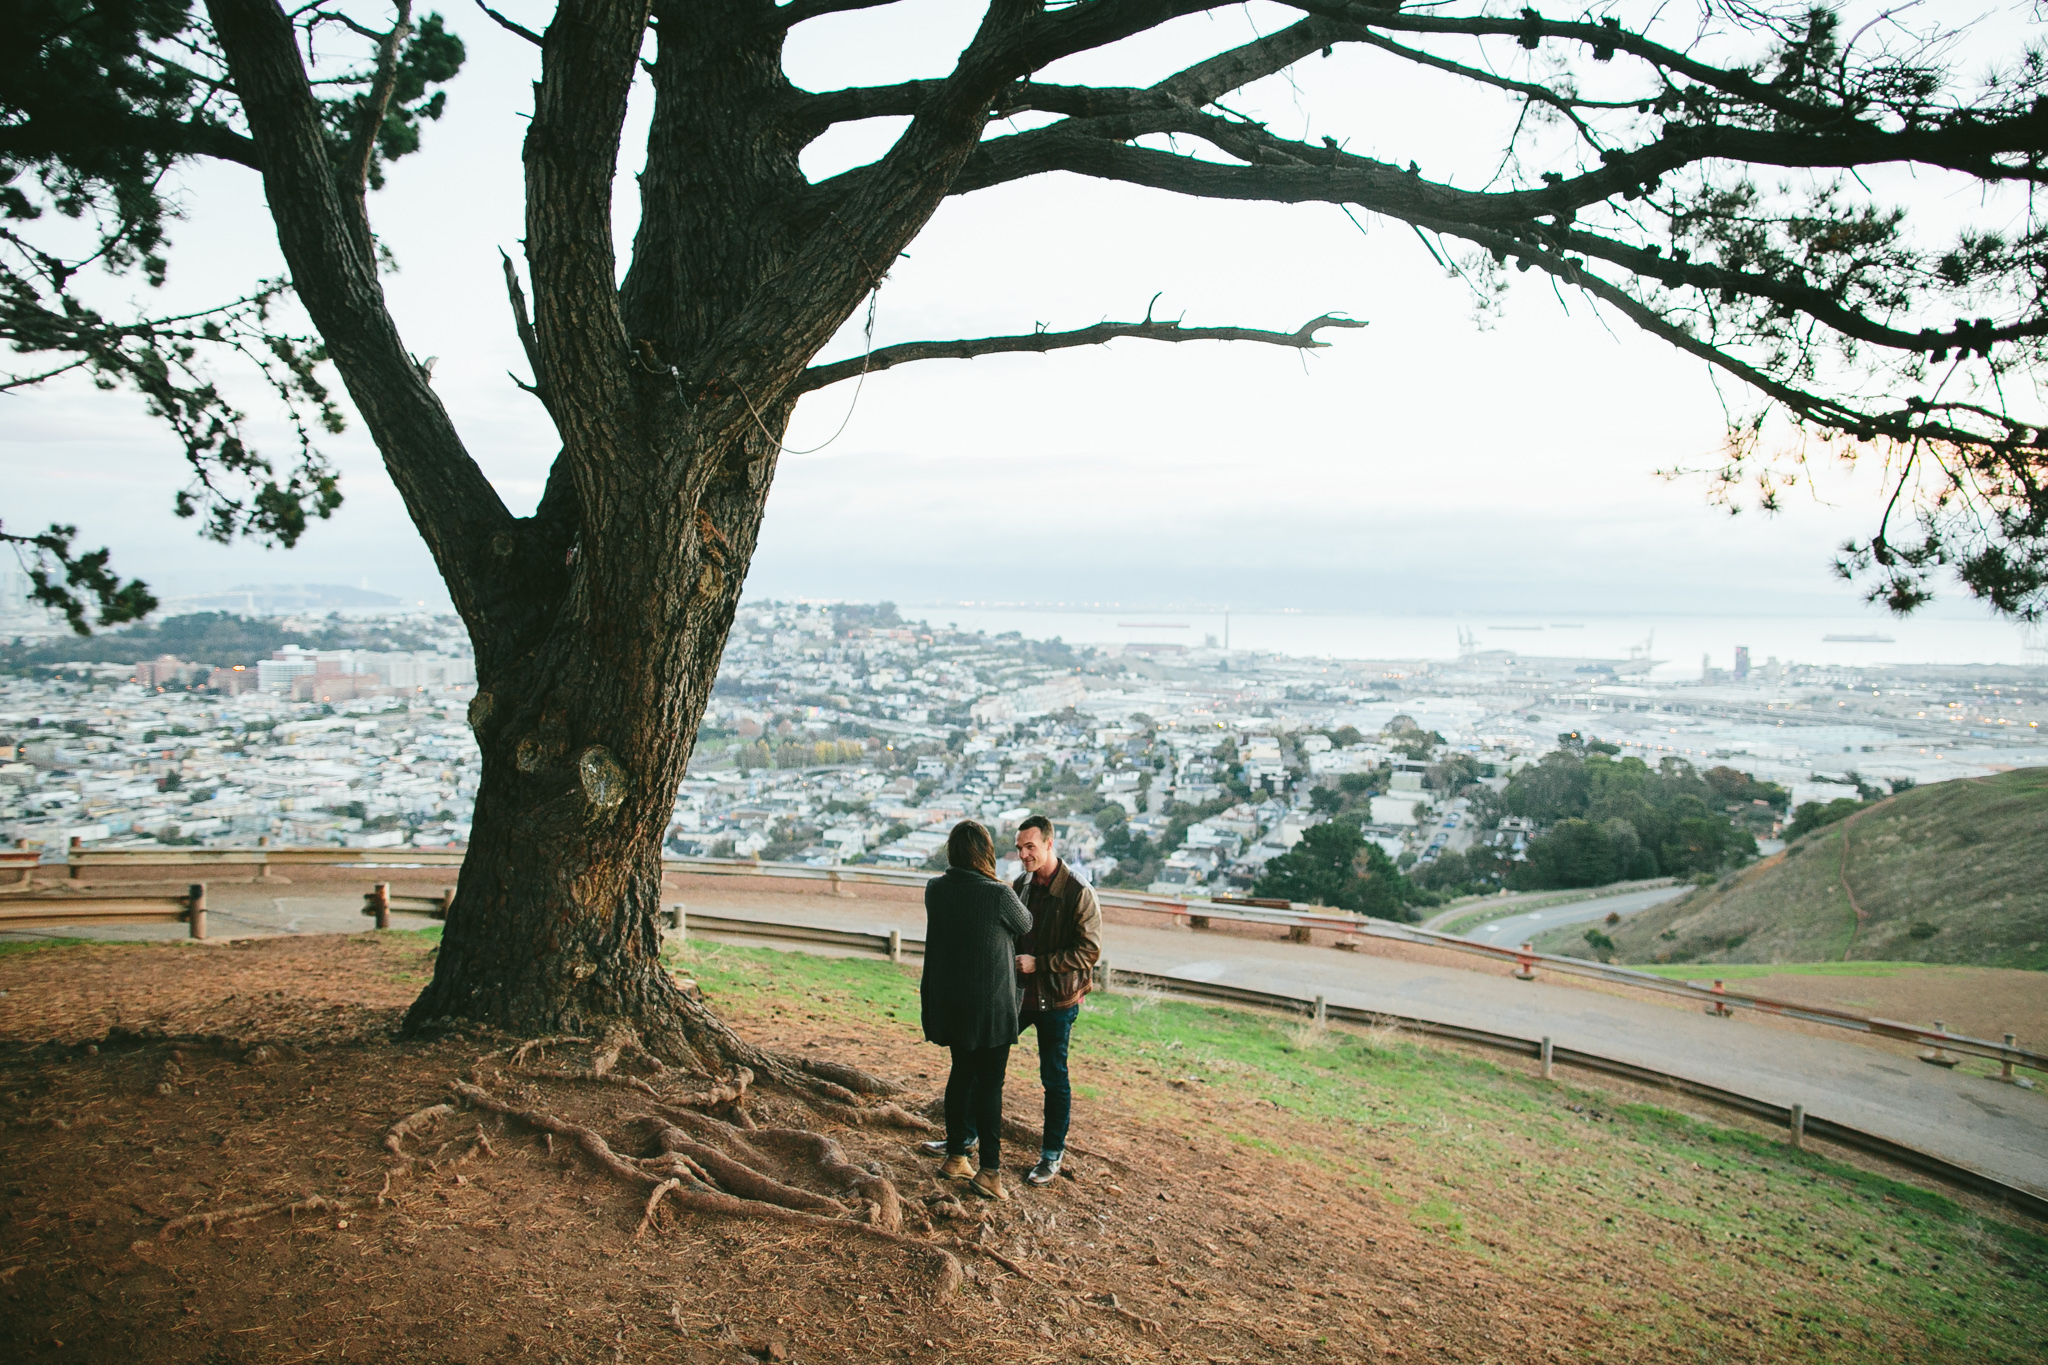 Sunee+Adam-Proposal-KellyBoitanoPhotography_WEB20151229_0001